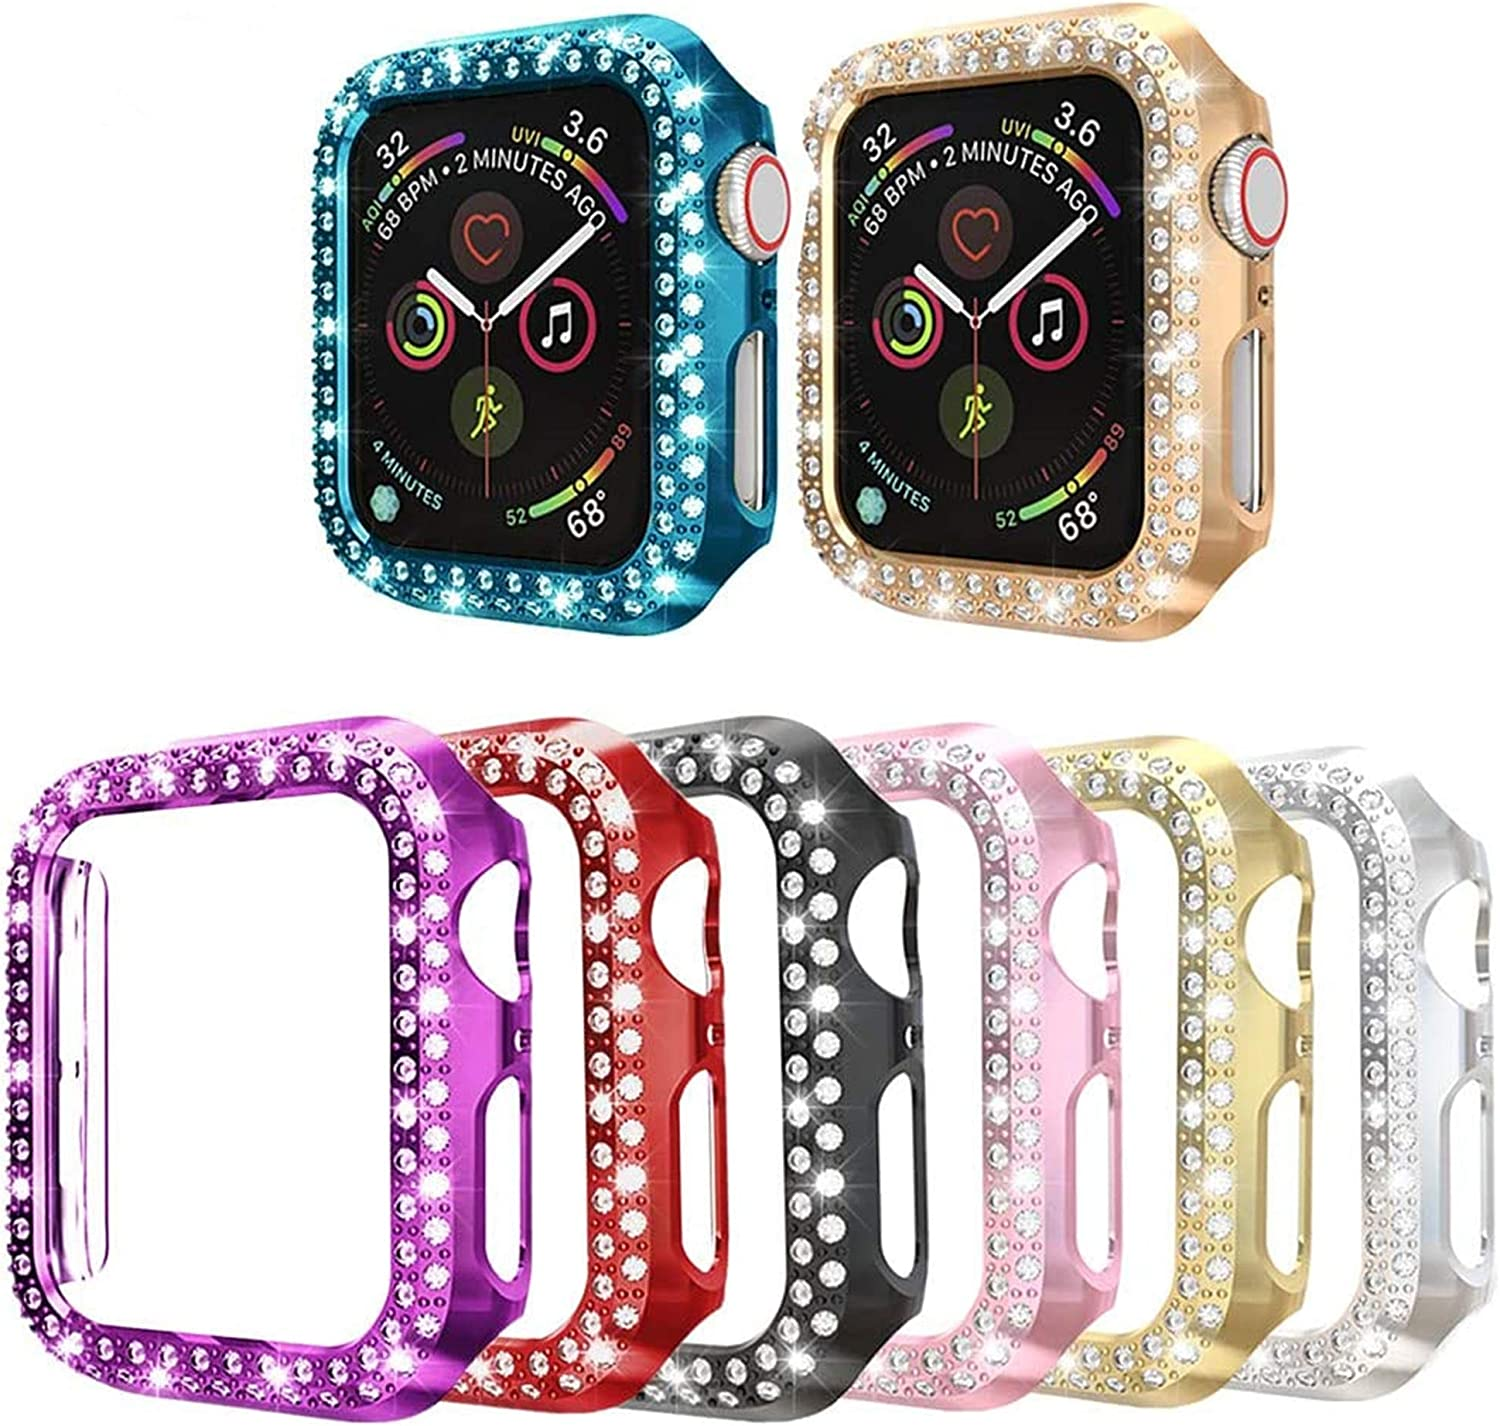 8PACK Bling Crystal Diamonds Plate Case Cover Protective Frame Compatible with Apple Watch 38mm/42mm/40mm/44mm Watch Bumper (8 Colors Pack, 38mm Watch)